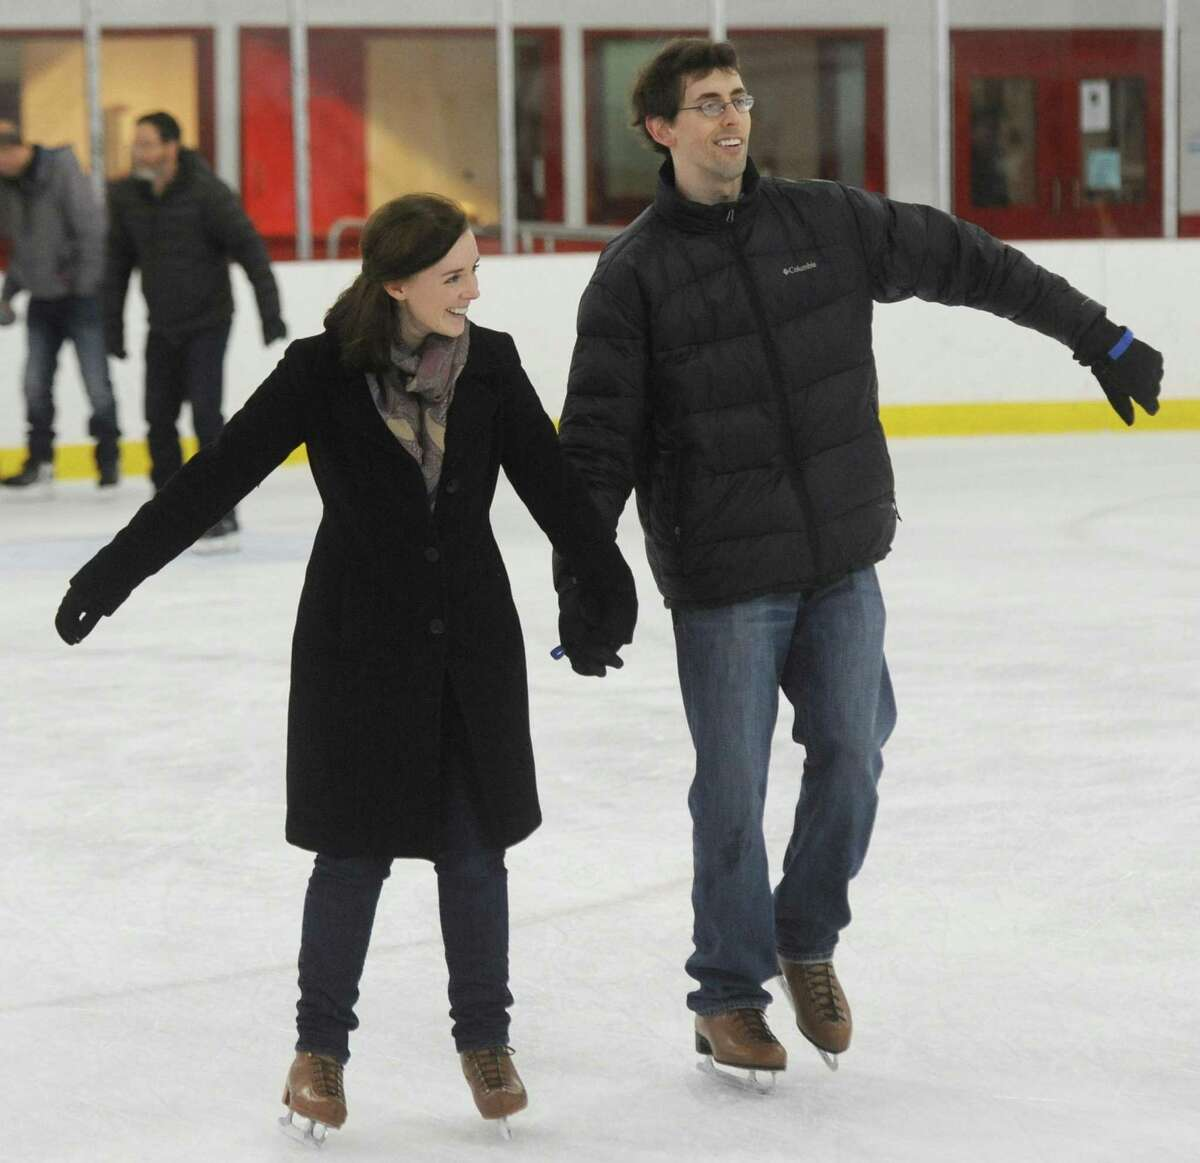 Ann Victor, of Greenwich, and Morgan Carter, of Stamford, hold hands while skating during the public skating session. at Hamill Rink in the Byram section of Greenwich, Conn. Sunday, Jan. 22, 2017. Hamill Rink has public skating on the weekends from 2 p.m. to 4 p.m. as well as several different times throughout the week.